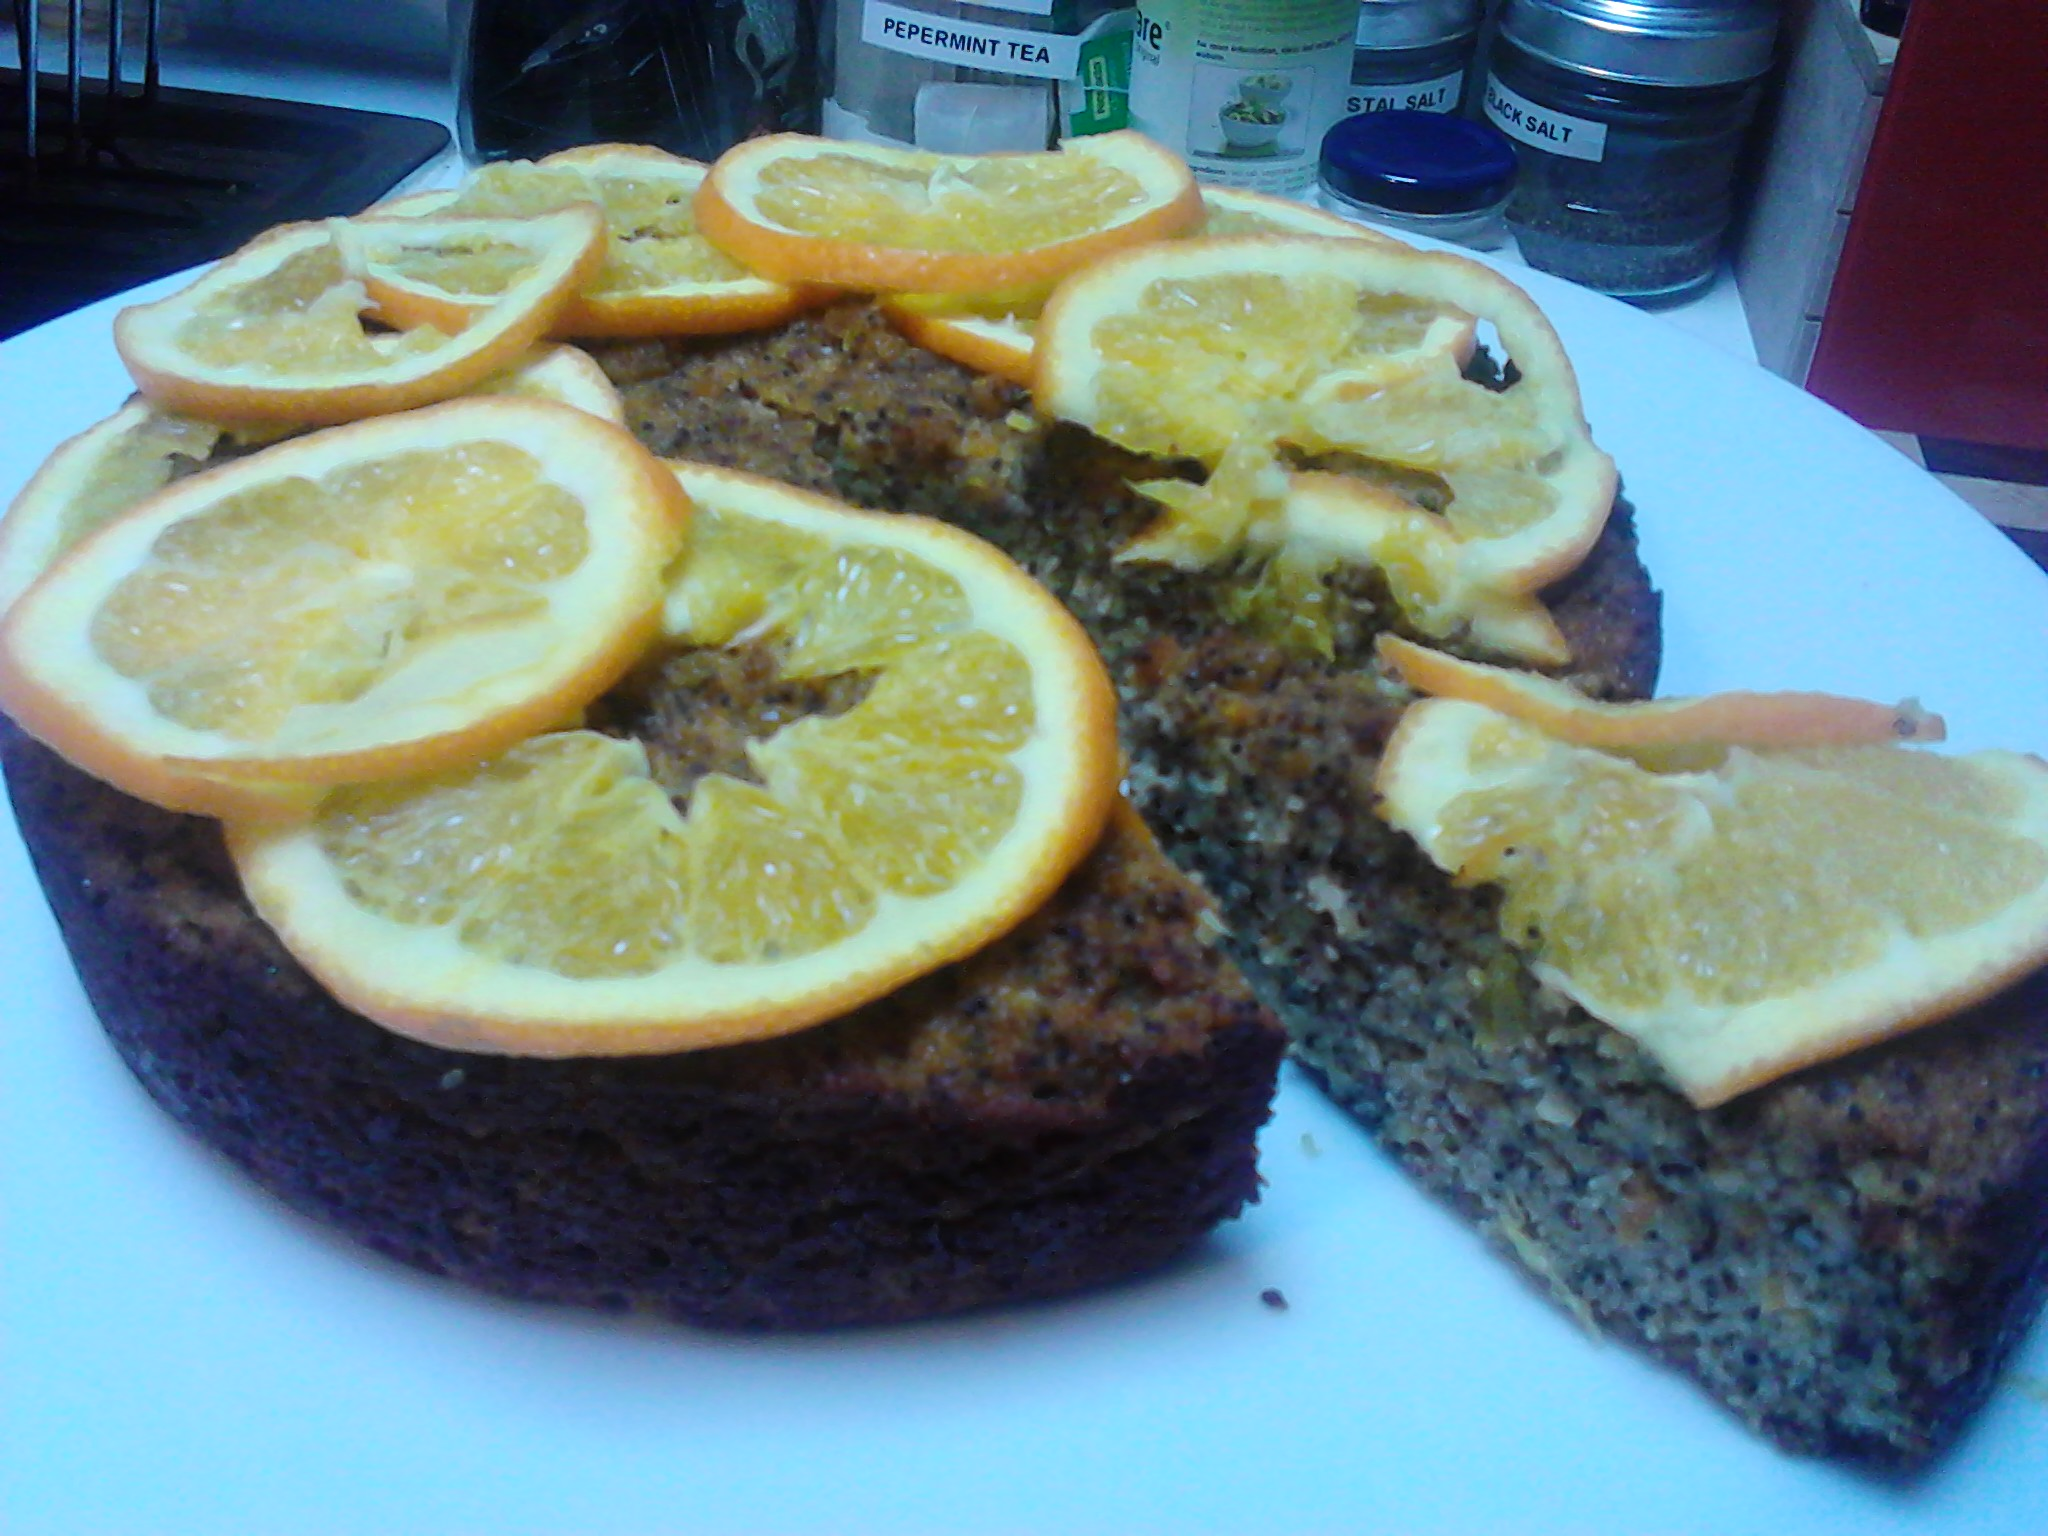 A Lovely Moist Cake Which Uses Whole Oranges To Give A Beautiful Flavour And Texture Low In Added Sugar With The Use Of Stevia And A Small Amount Of Rice